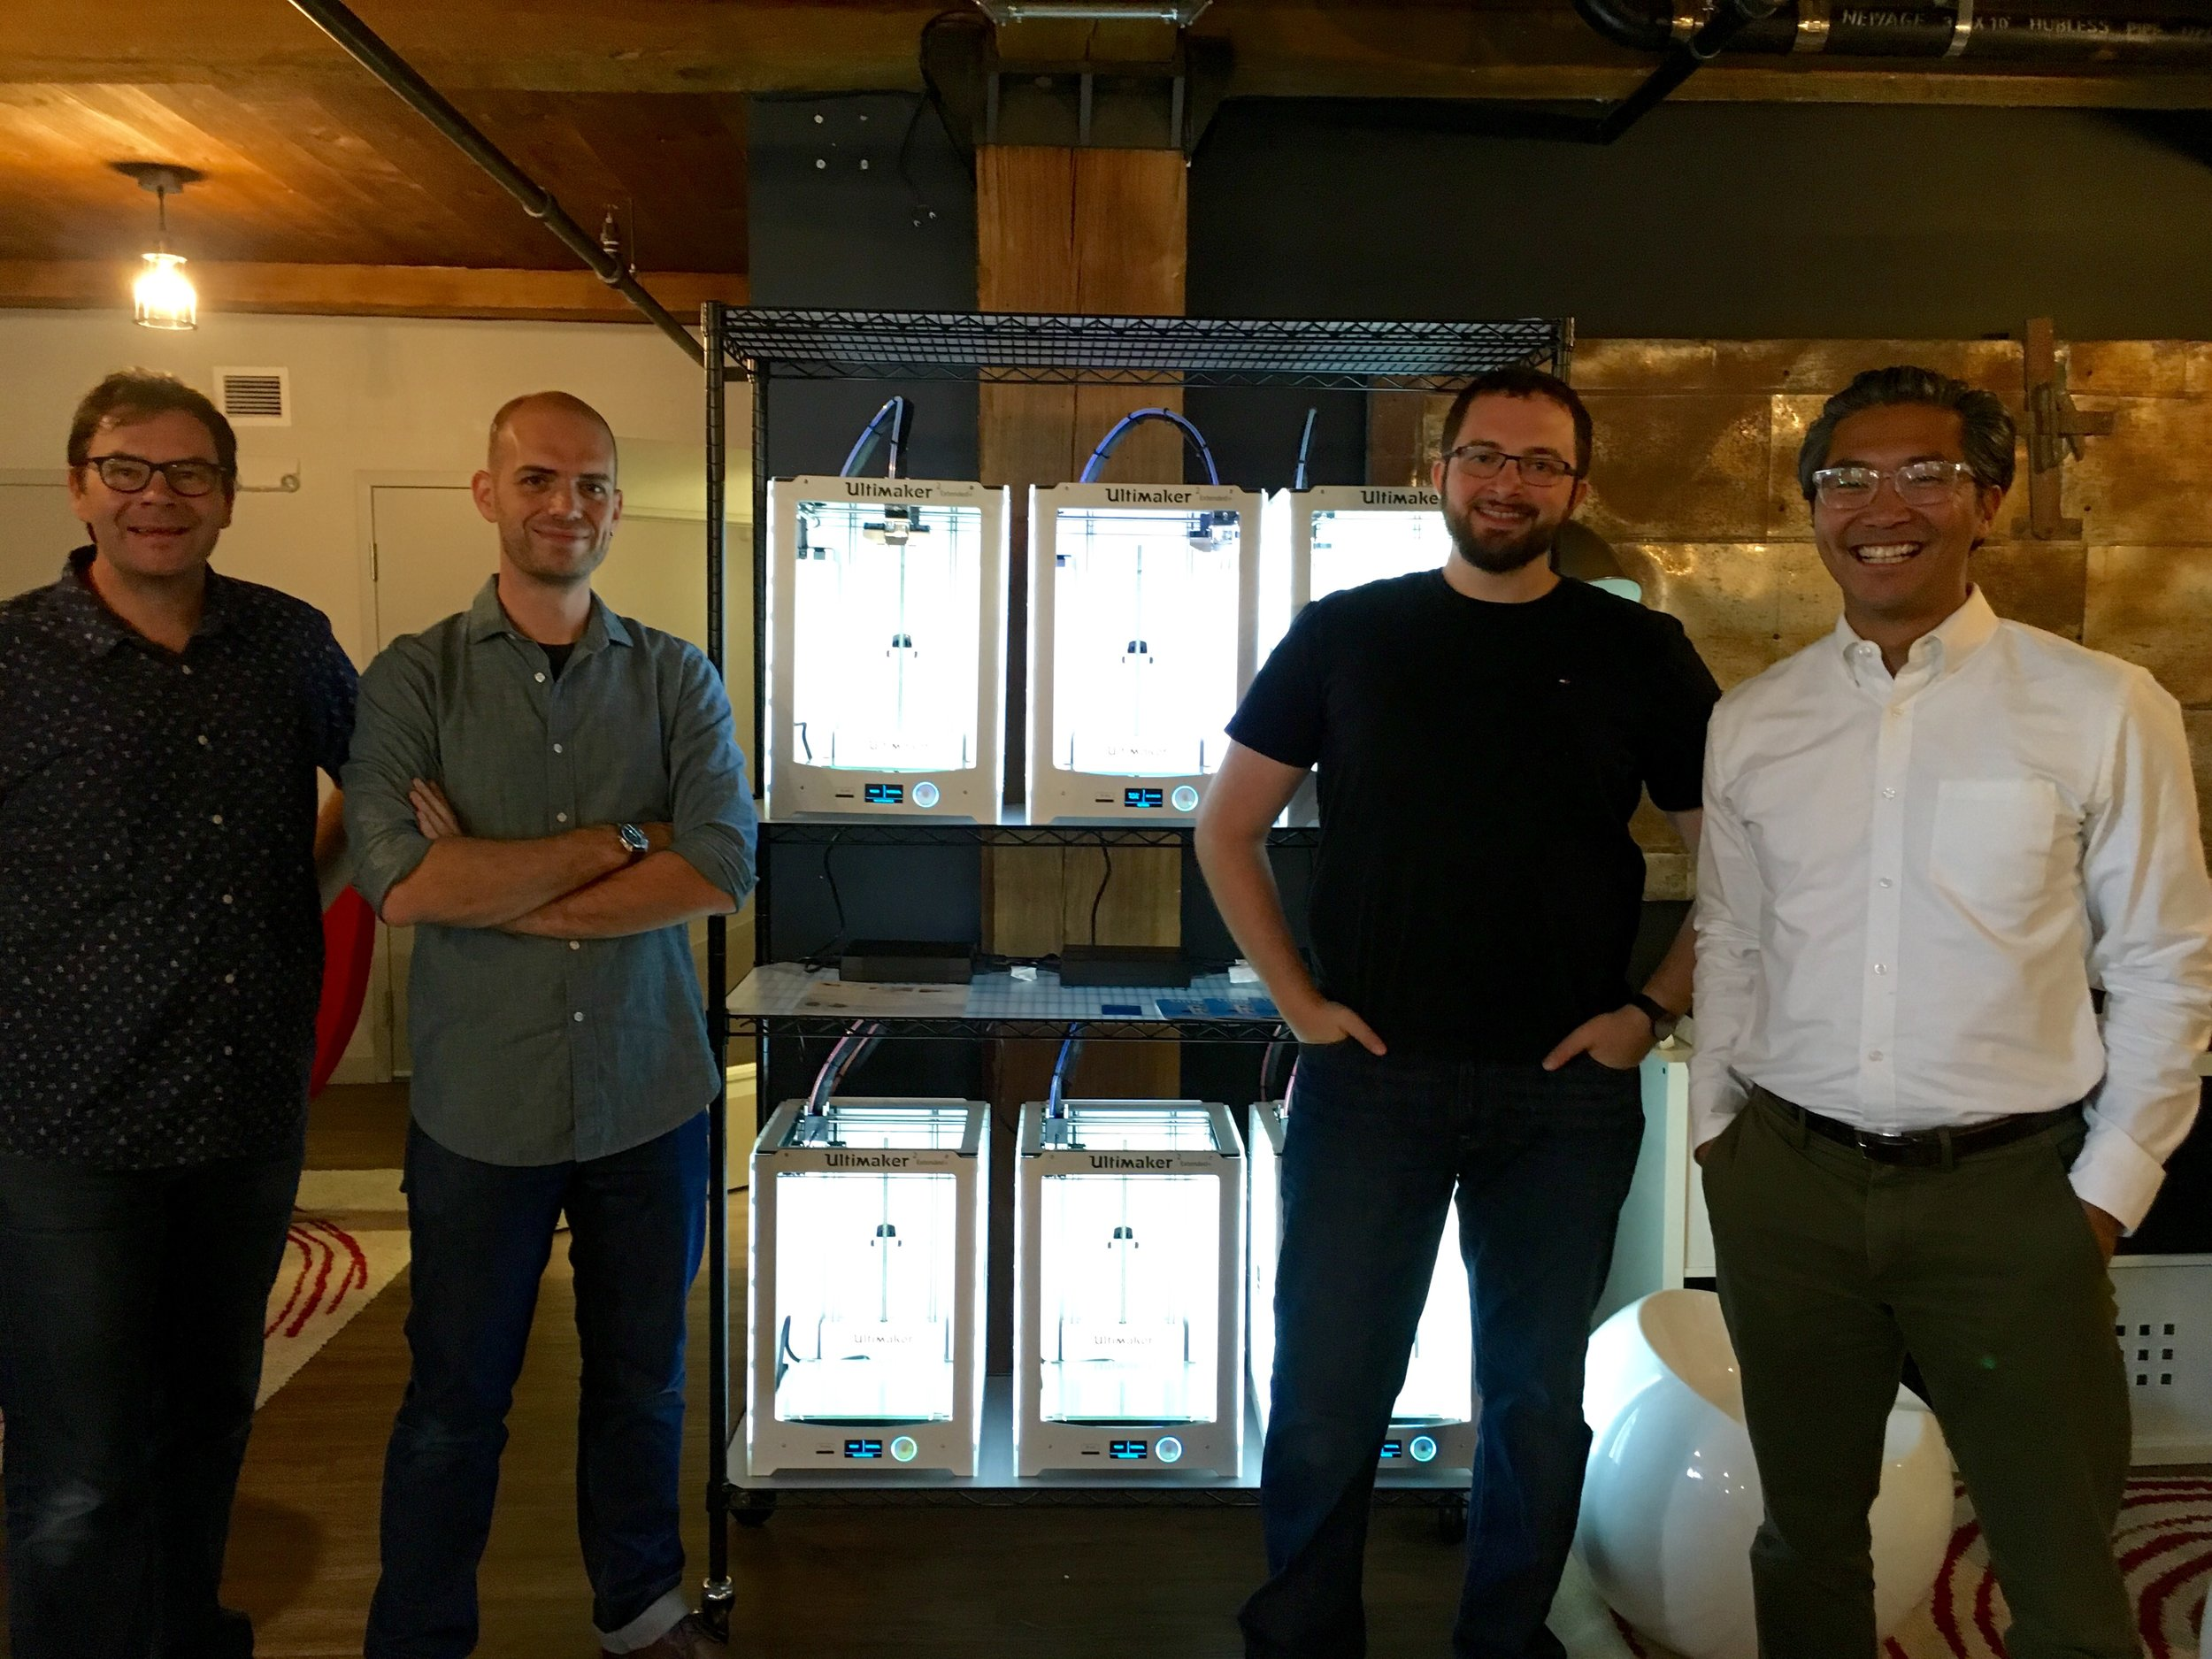 Left to right: The instructors of Design for Disability, Todd Corlett and Mikael Avery from Philadelphia University , and Rob Pugliese and Bon Ku from Thomas Jefferson University, JeffDESIGN